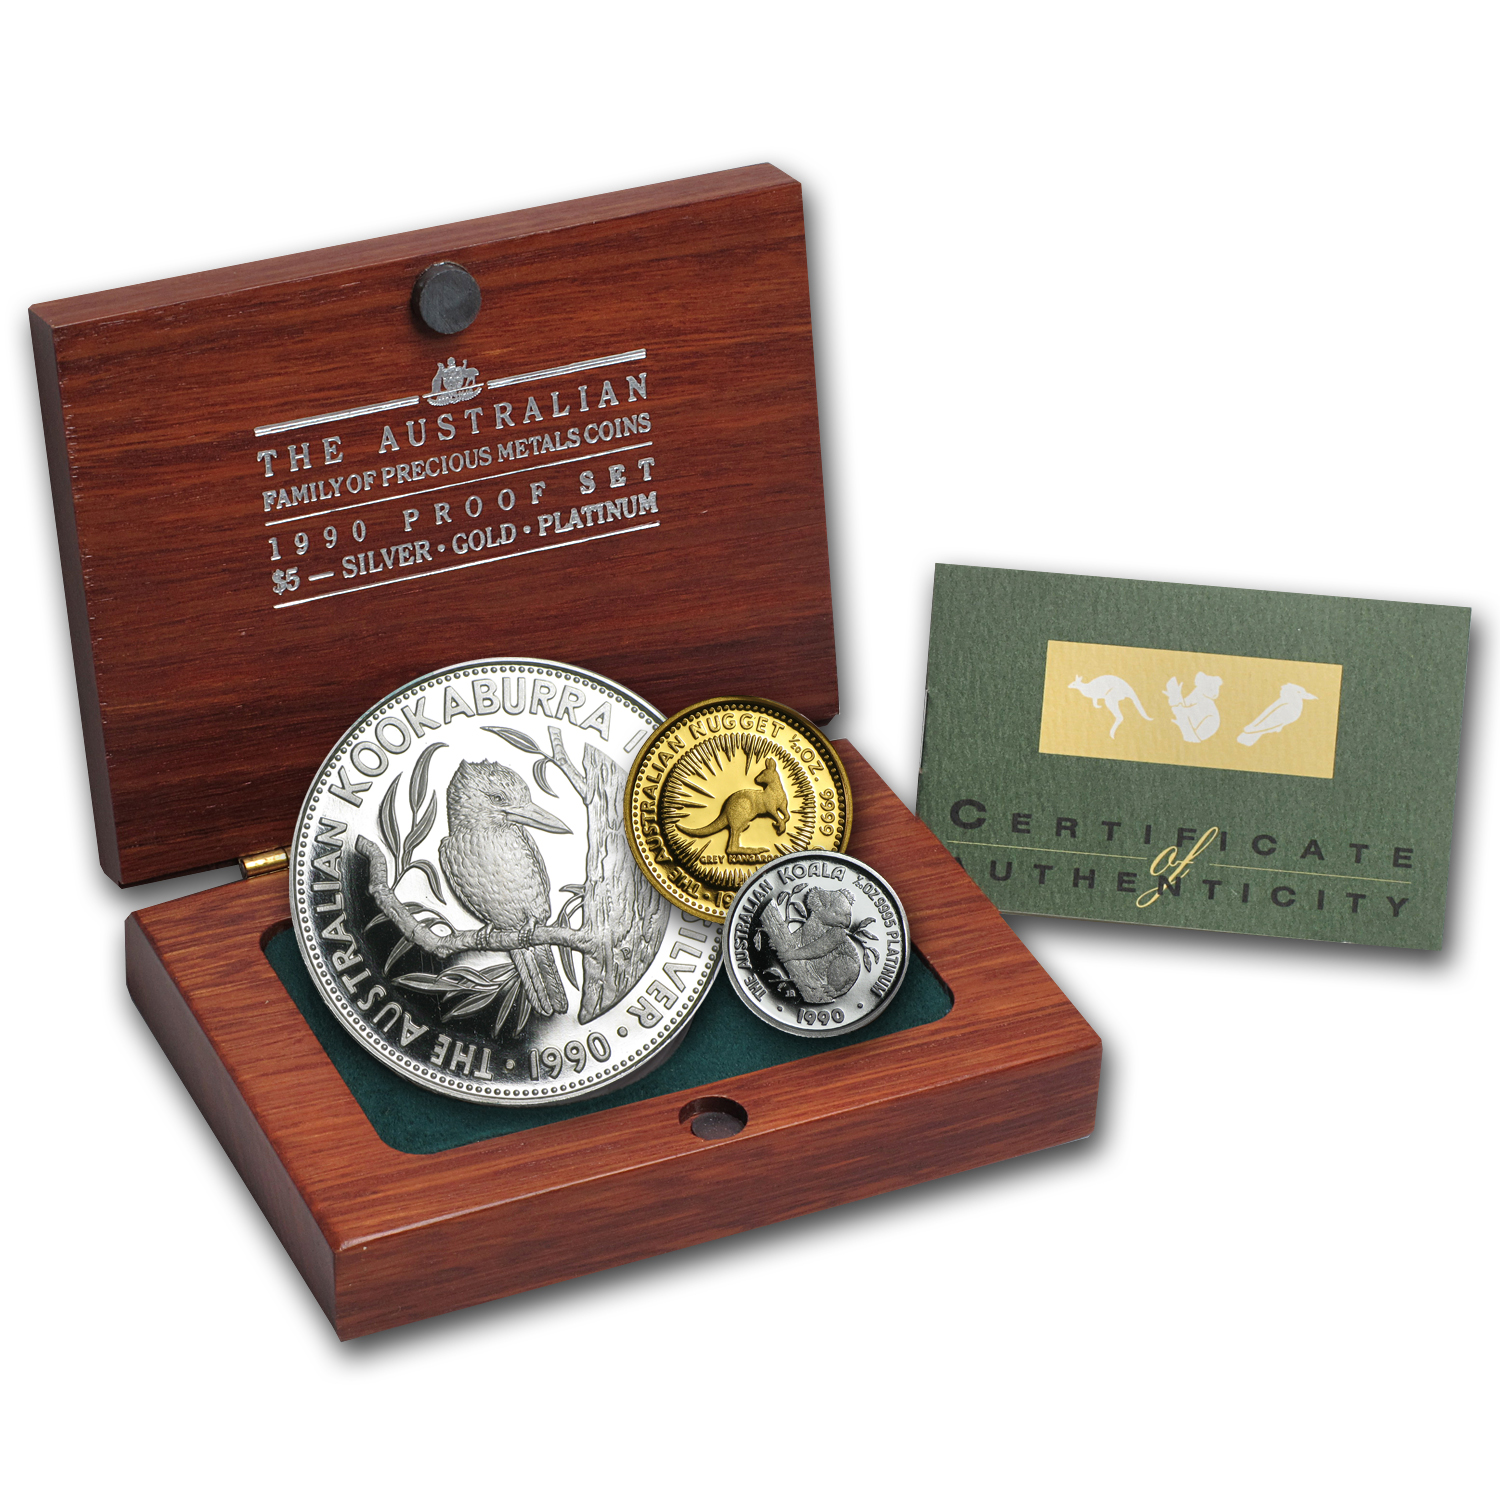 1990 Australia 3-Coin Family of Precious Metals Proof Set (Box)